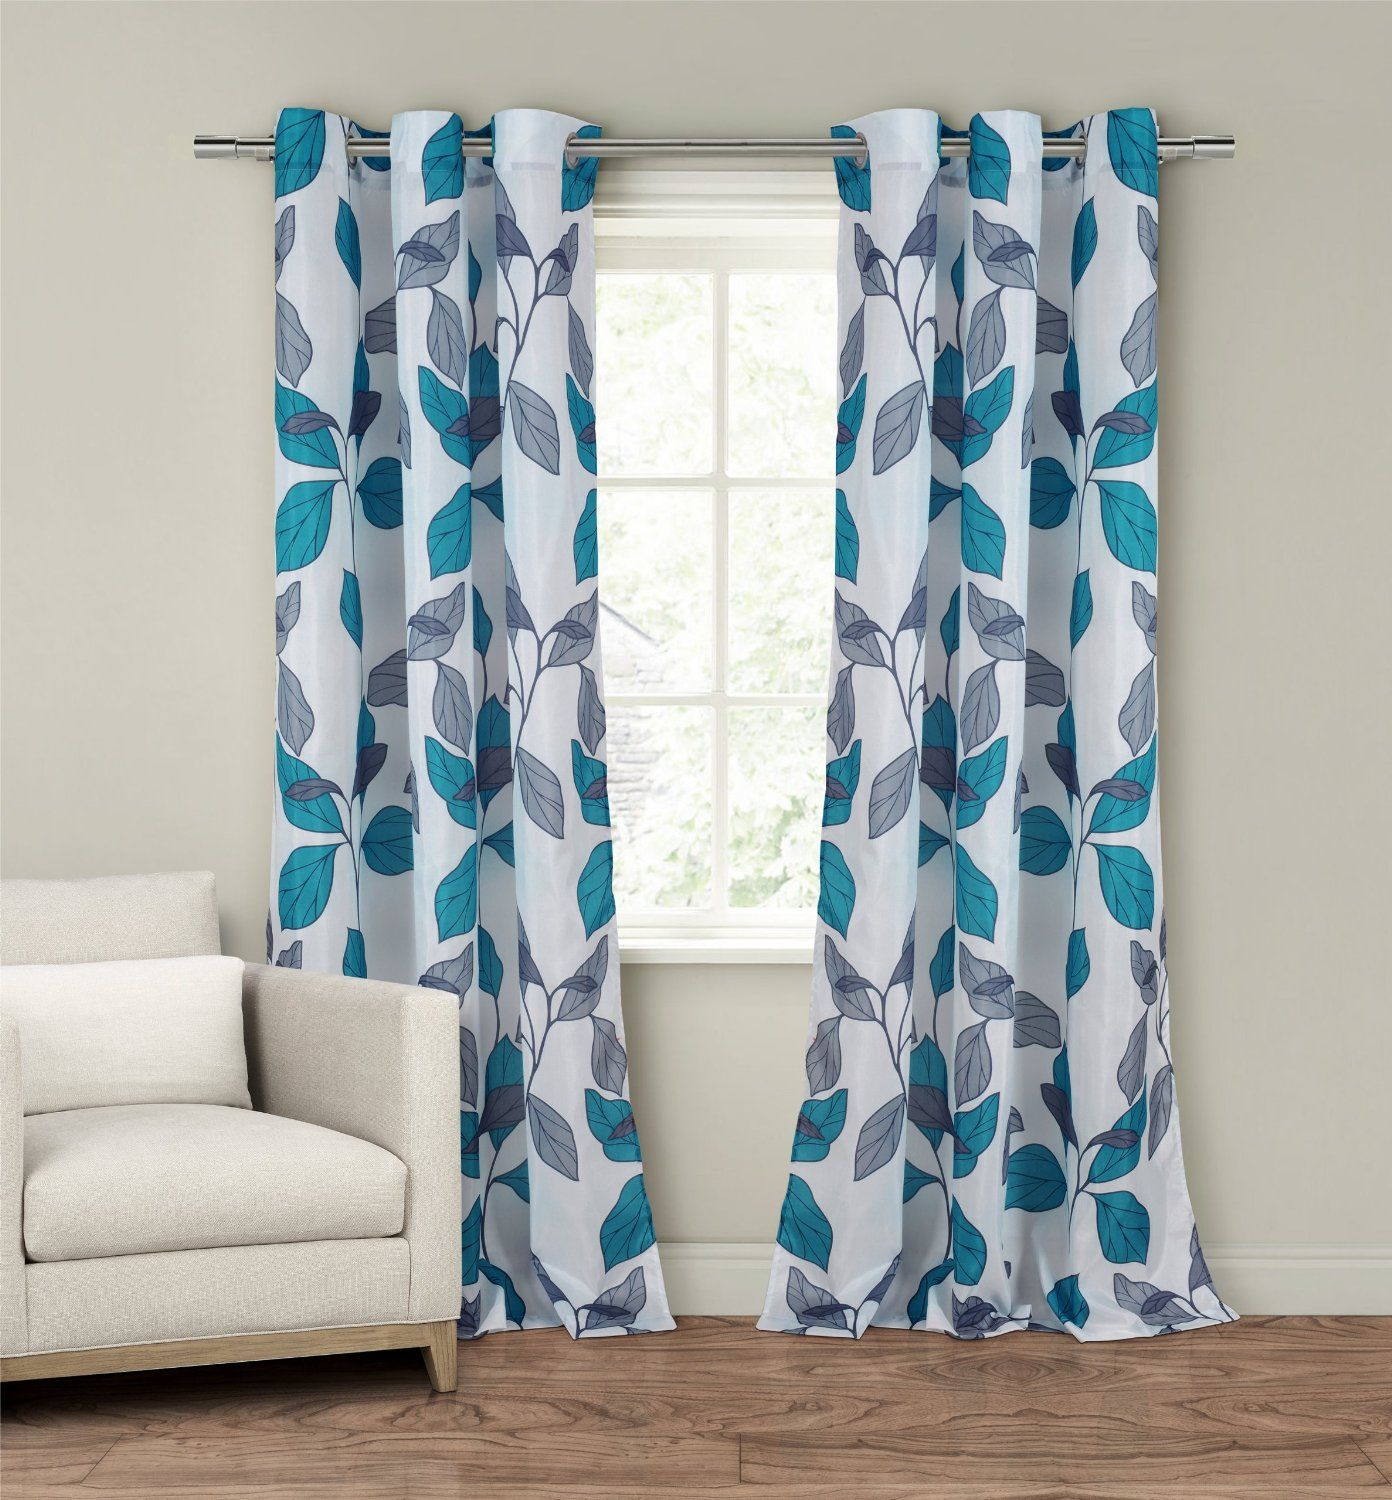 Teal and grey curtain panels - New Set 2 Window Curtains Panels Drapes Pair 84 Faux Silk Gray Grey Blue Floral In Home Garden Window Treatments Hardware Curtains Drapes Valances